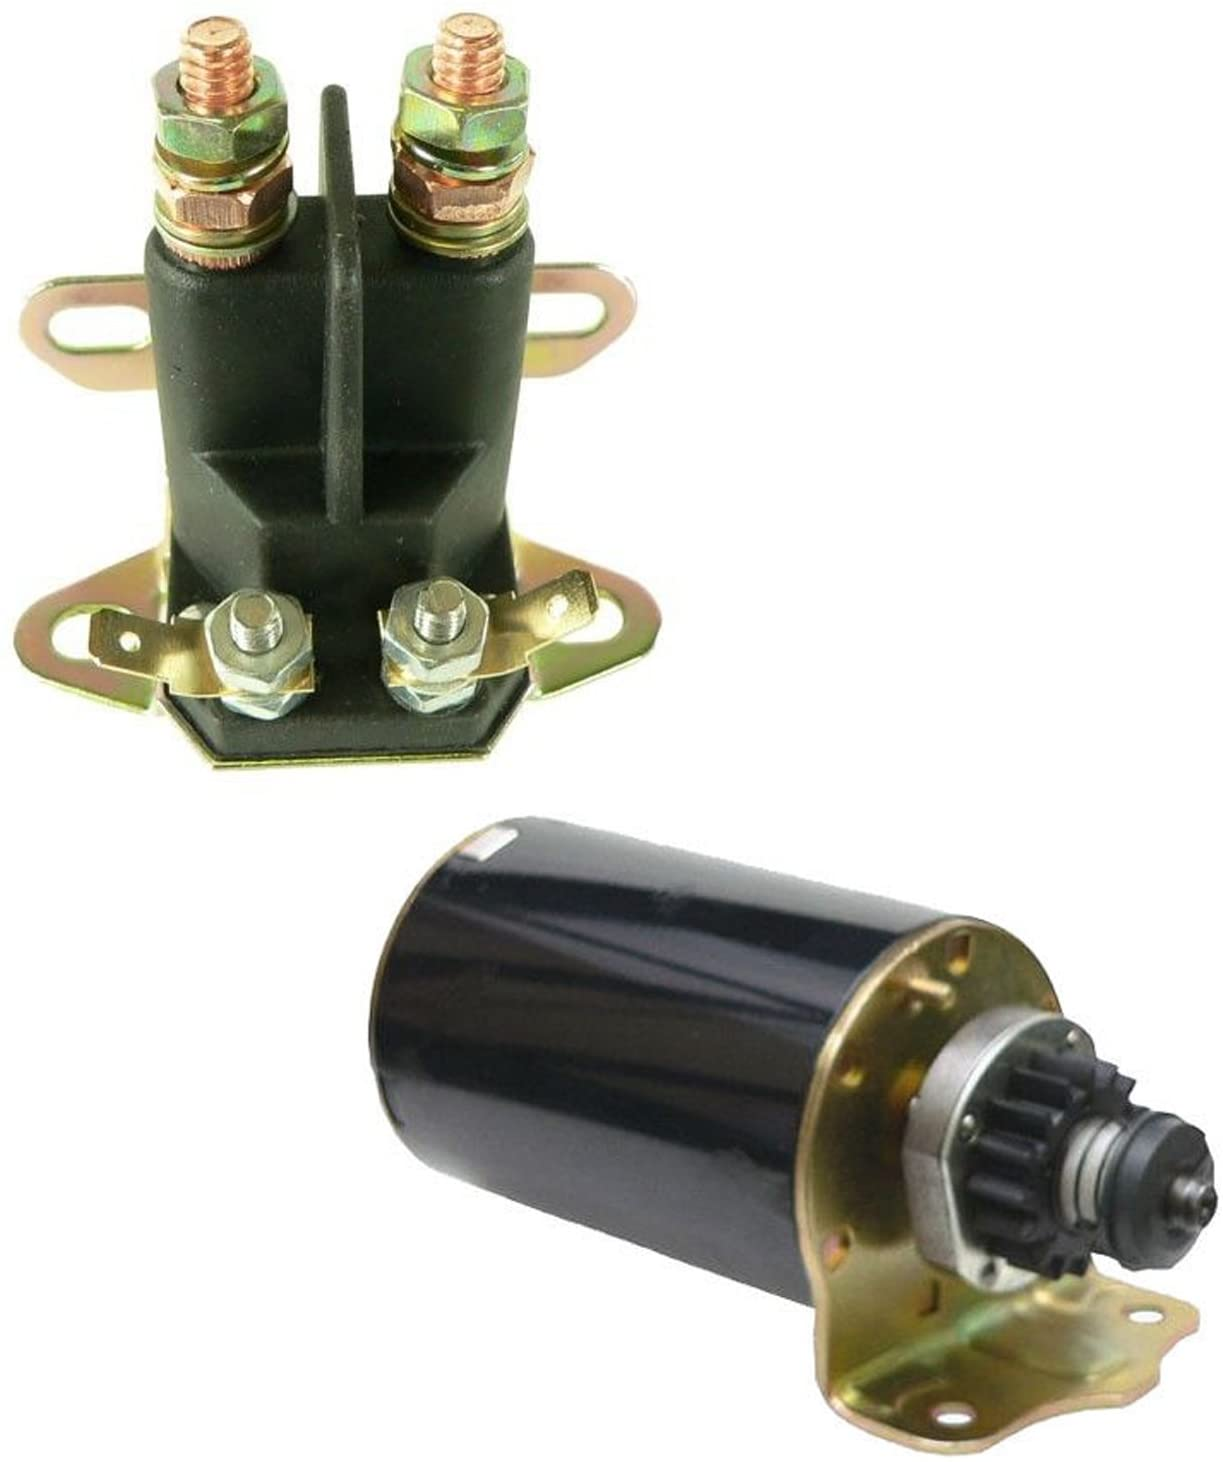 NEW Starter + SOLENOID Replacement For BRIGGS & STRATTON 31C707 31D707 31D777 31E777 31F707